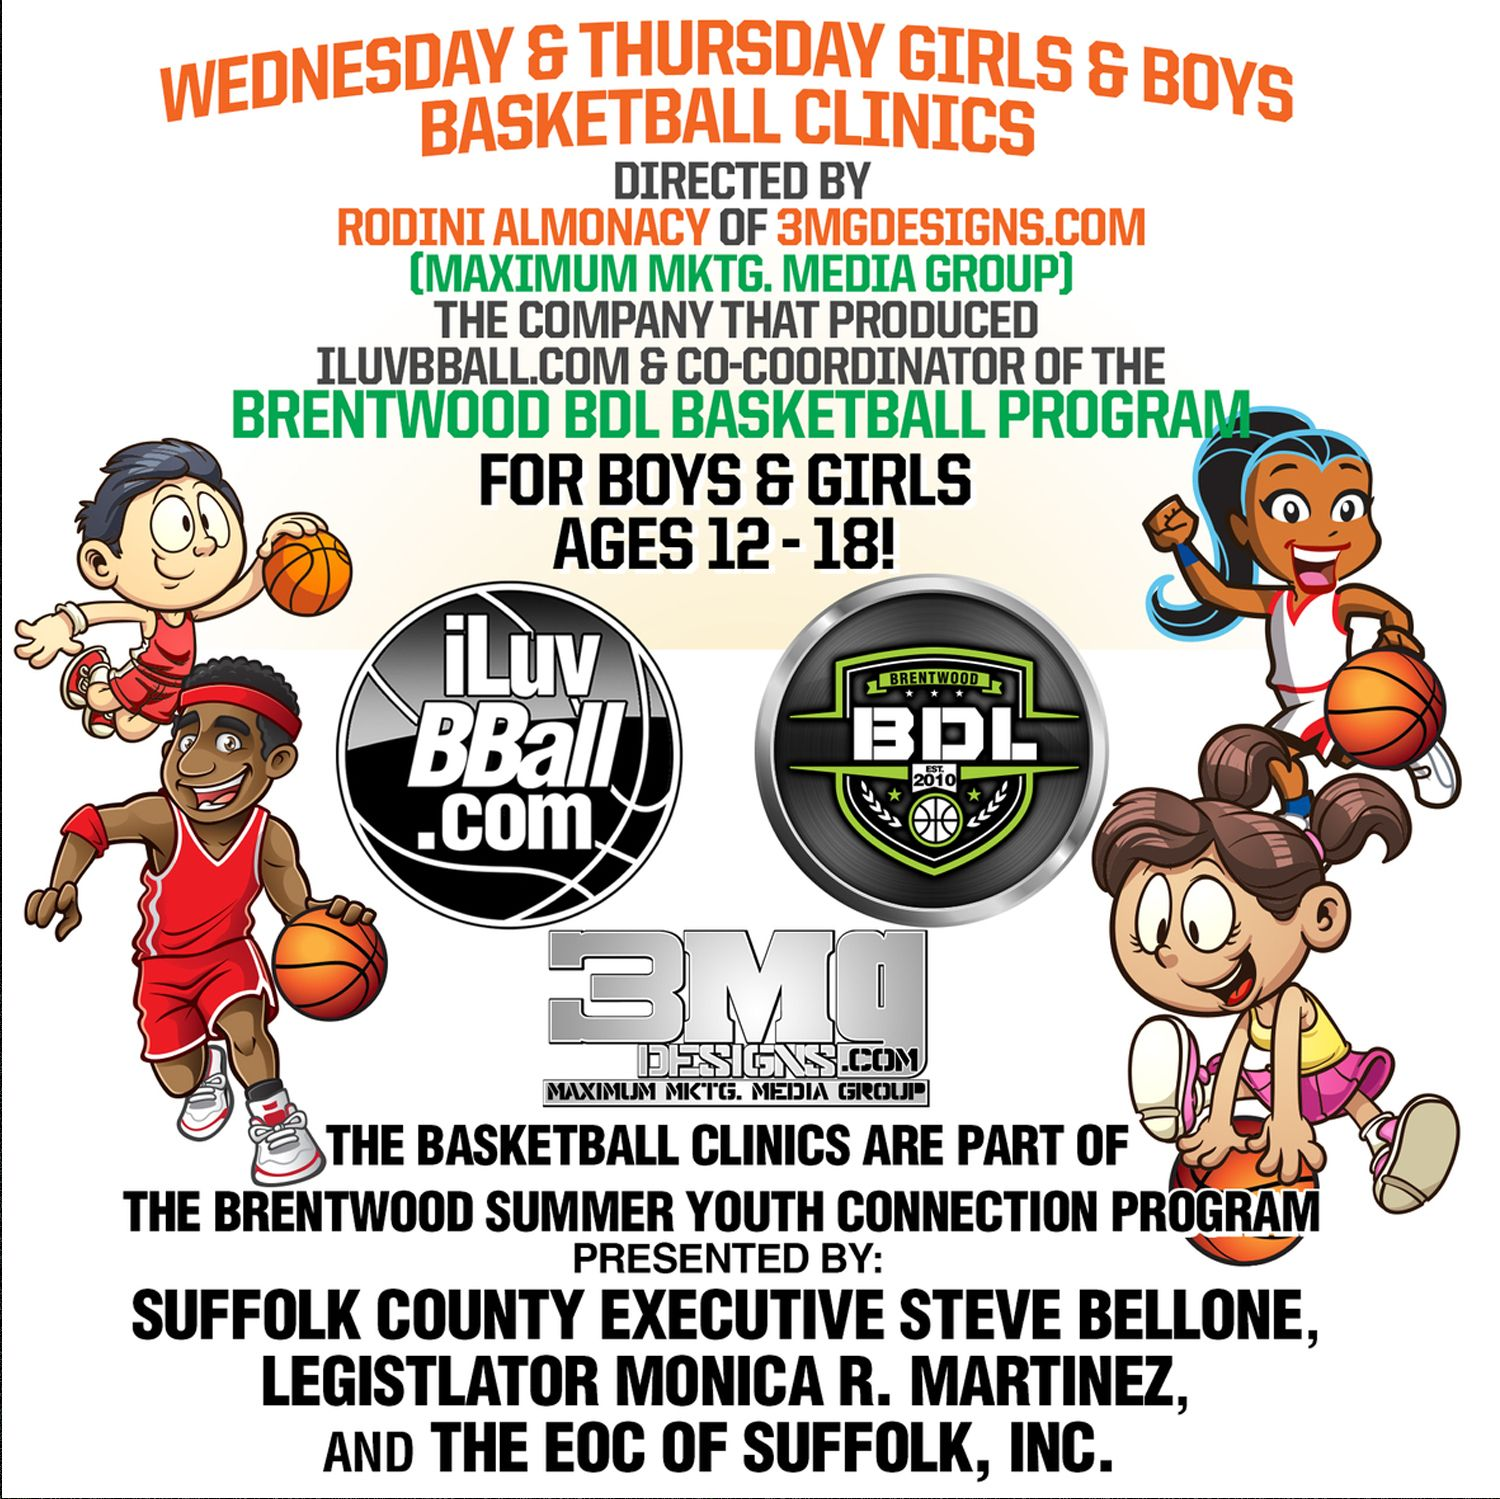 In accordance with our commitment to helping the children in our communities, iLuvBBall.com would like to present       CALL CALL NOW for more info 631-853-8270 or 631-492-1404 ext. 627 program runs from July 11th through August 18th! locations is: South Middle School  785 Candlewood Rd. Brentwood, NY 11717 REGISTER NOW SPOTS ARE LIMITED!